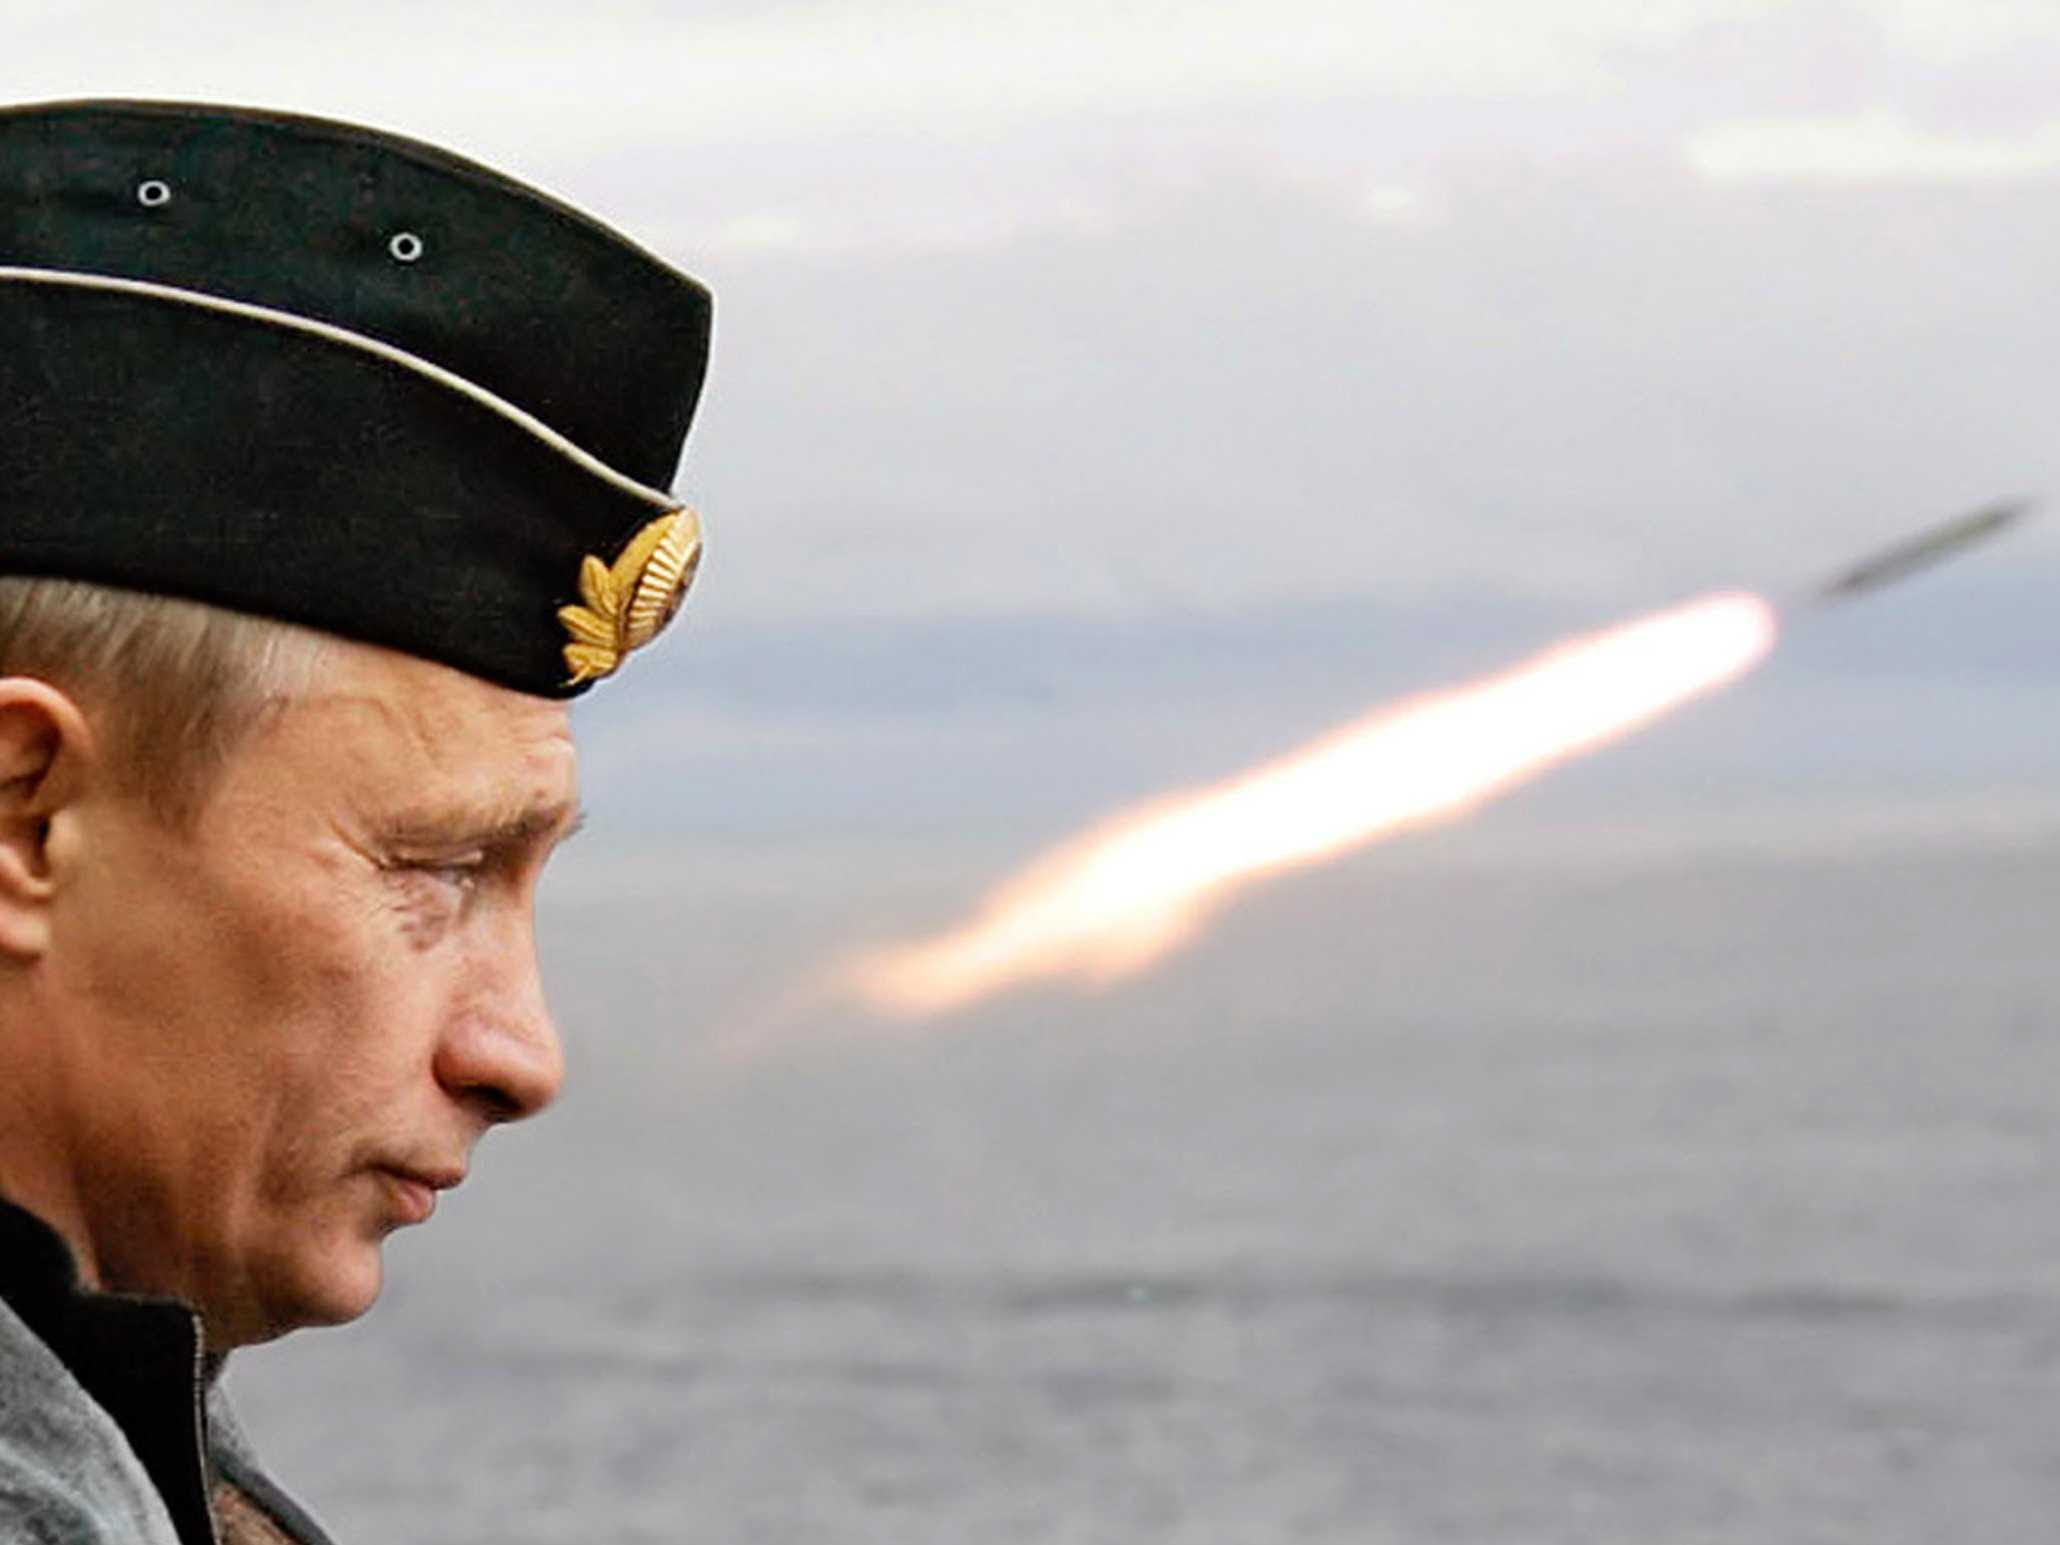 russia-tests-unstoppable-nuclear-icbm-am